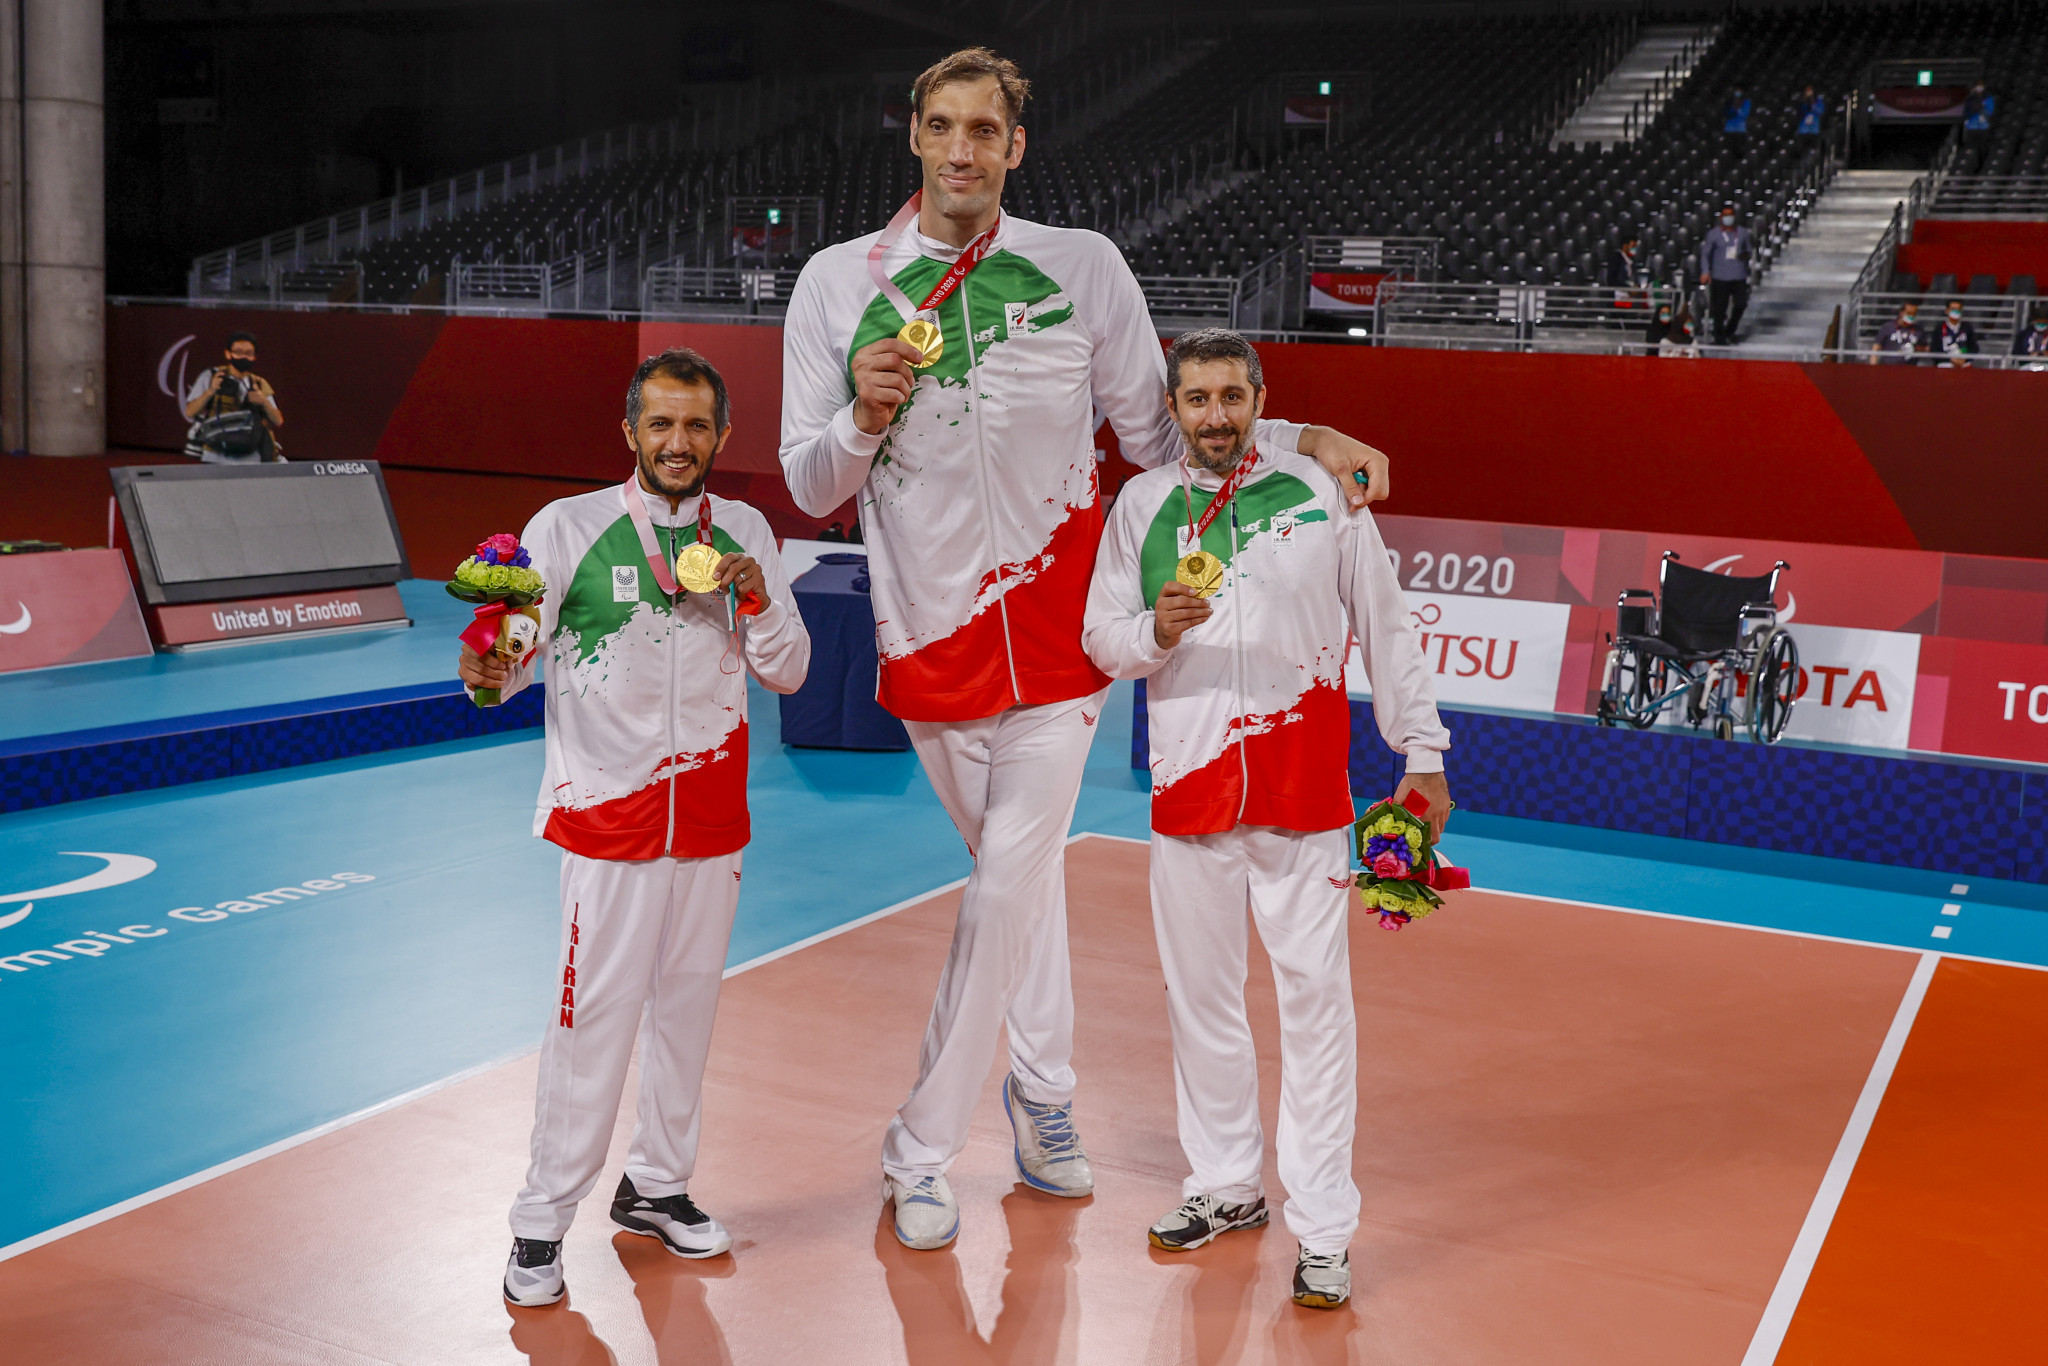 Morteza Mehrzadselakjani, centre, scored 28 points in the gold medal match ©Getty Images